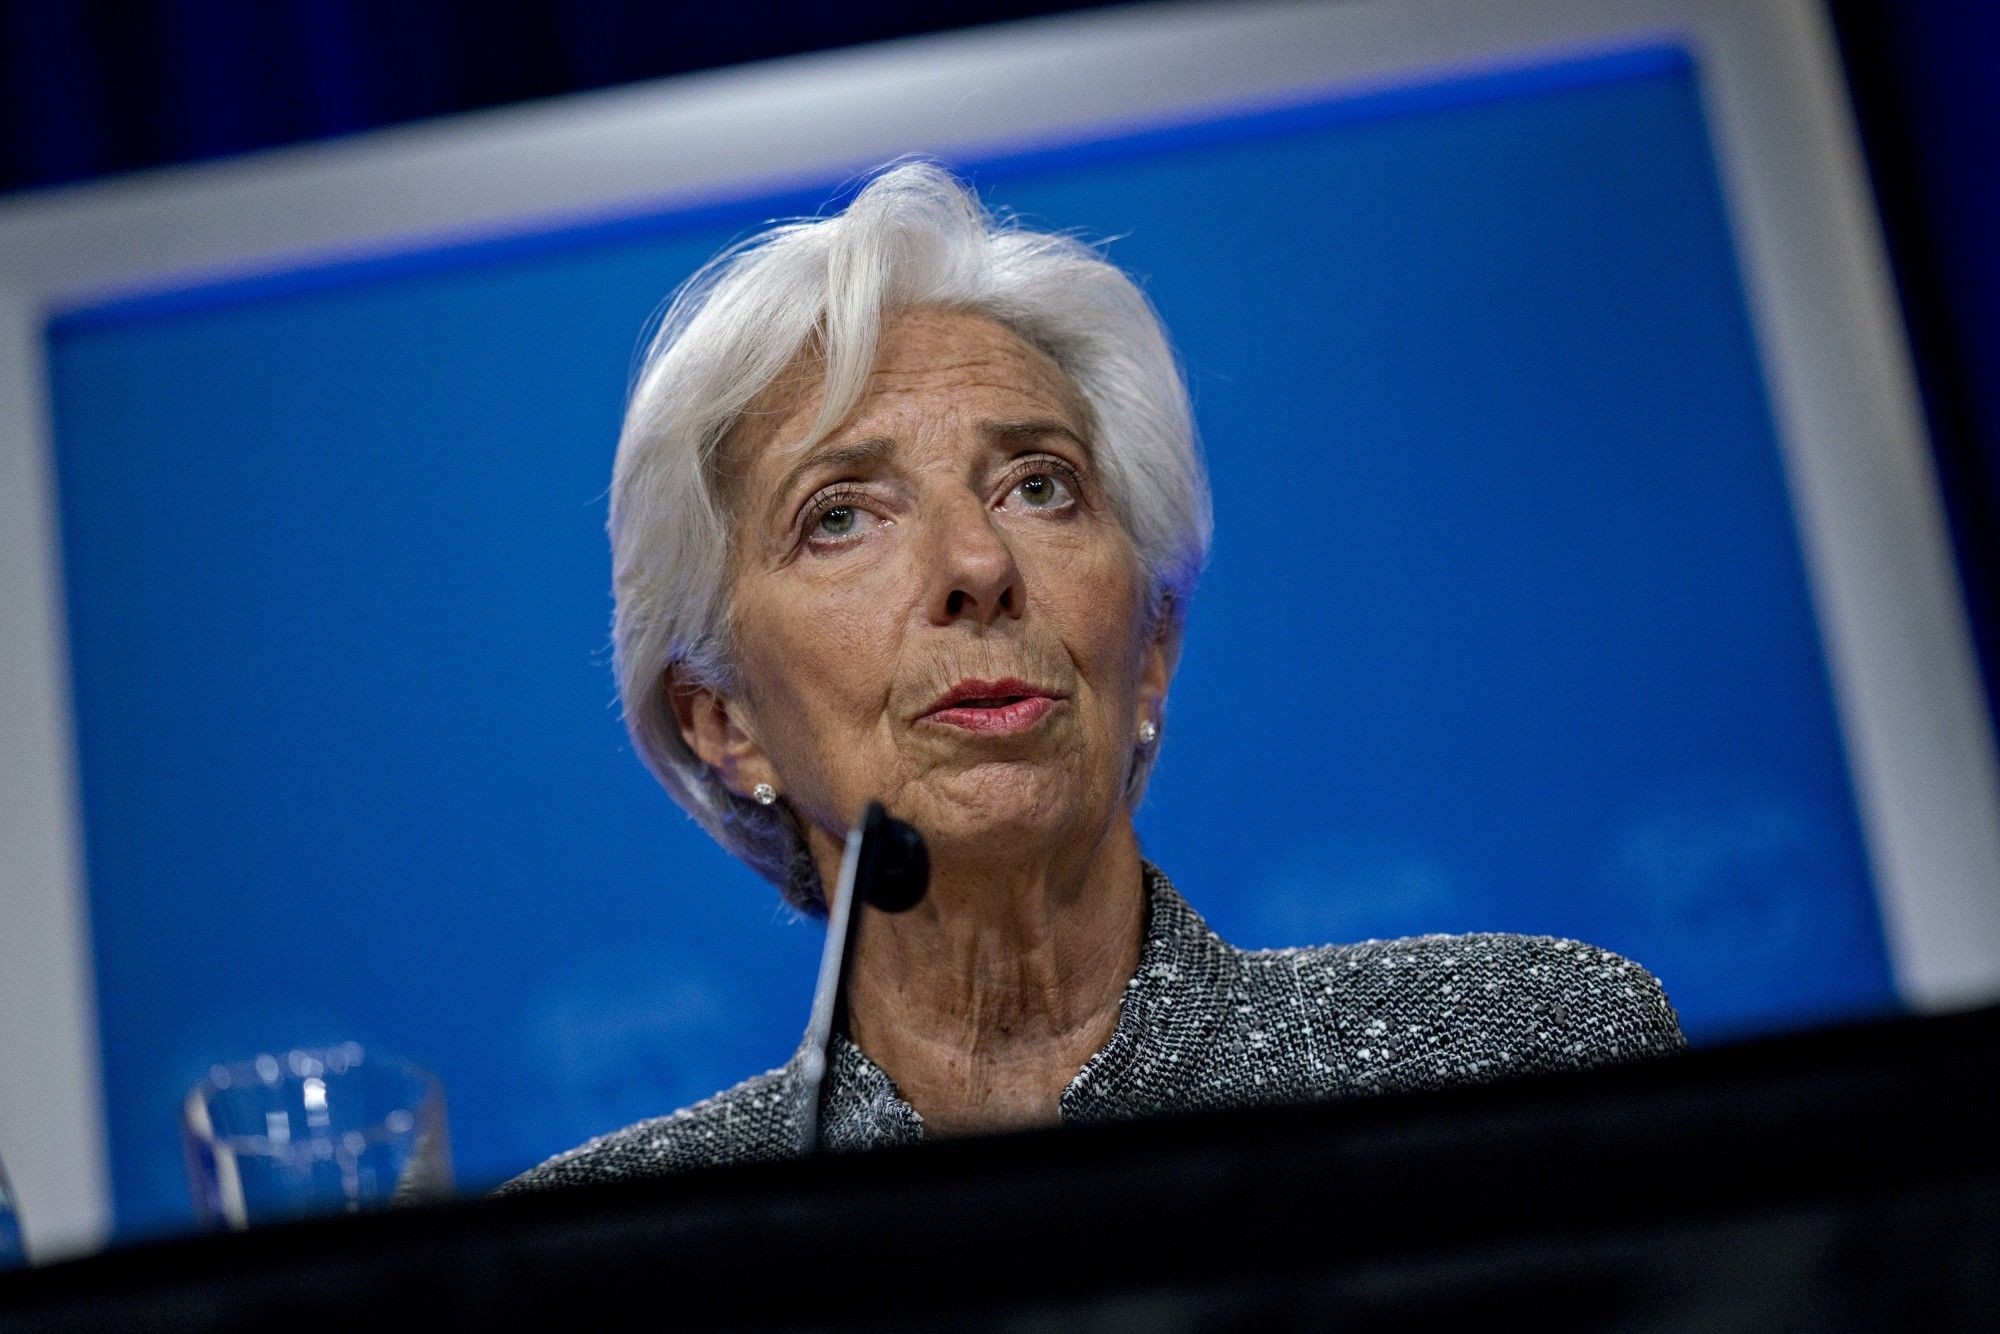 IMF's Lagarde Holds News Conference On Annual Review Of U.S. Economy